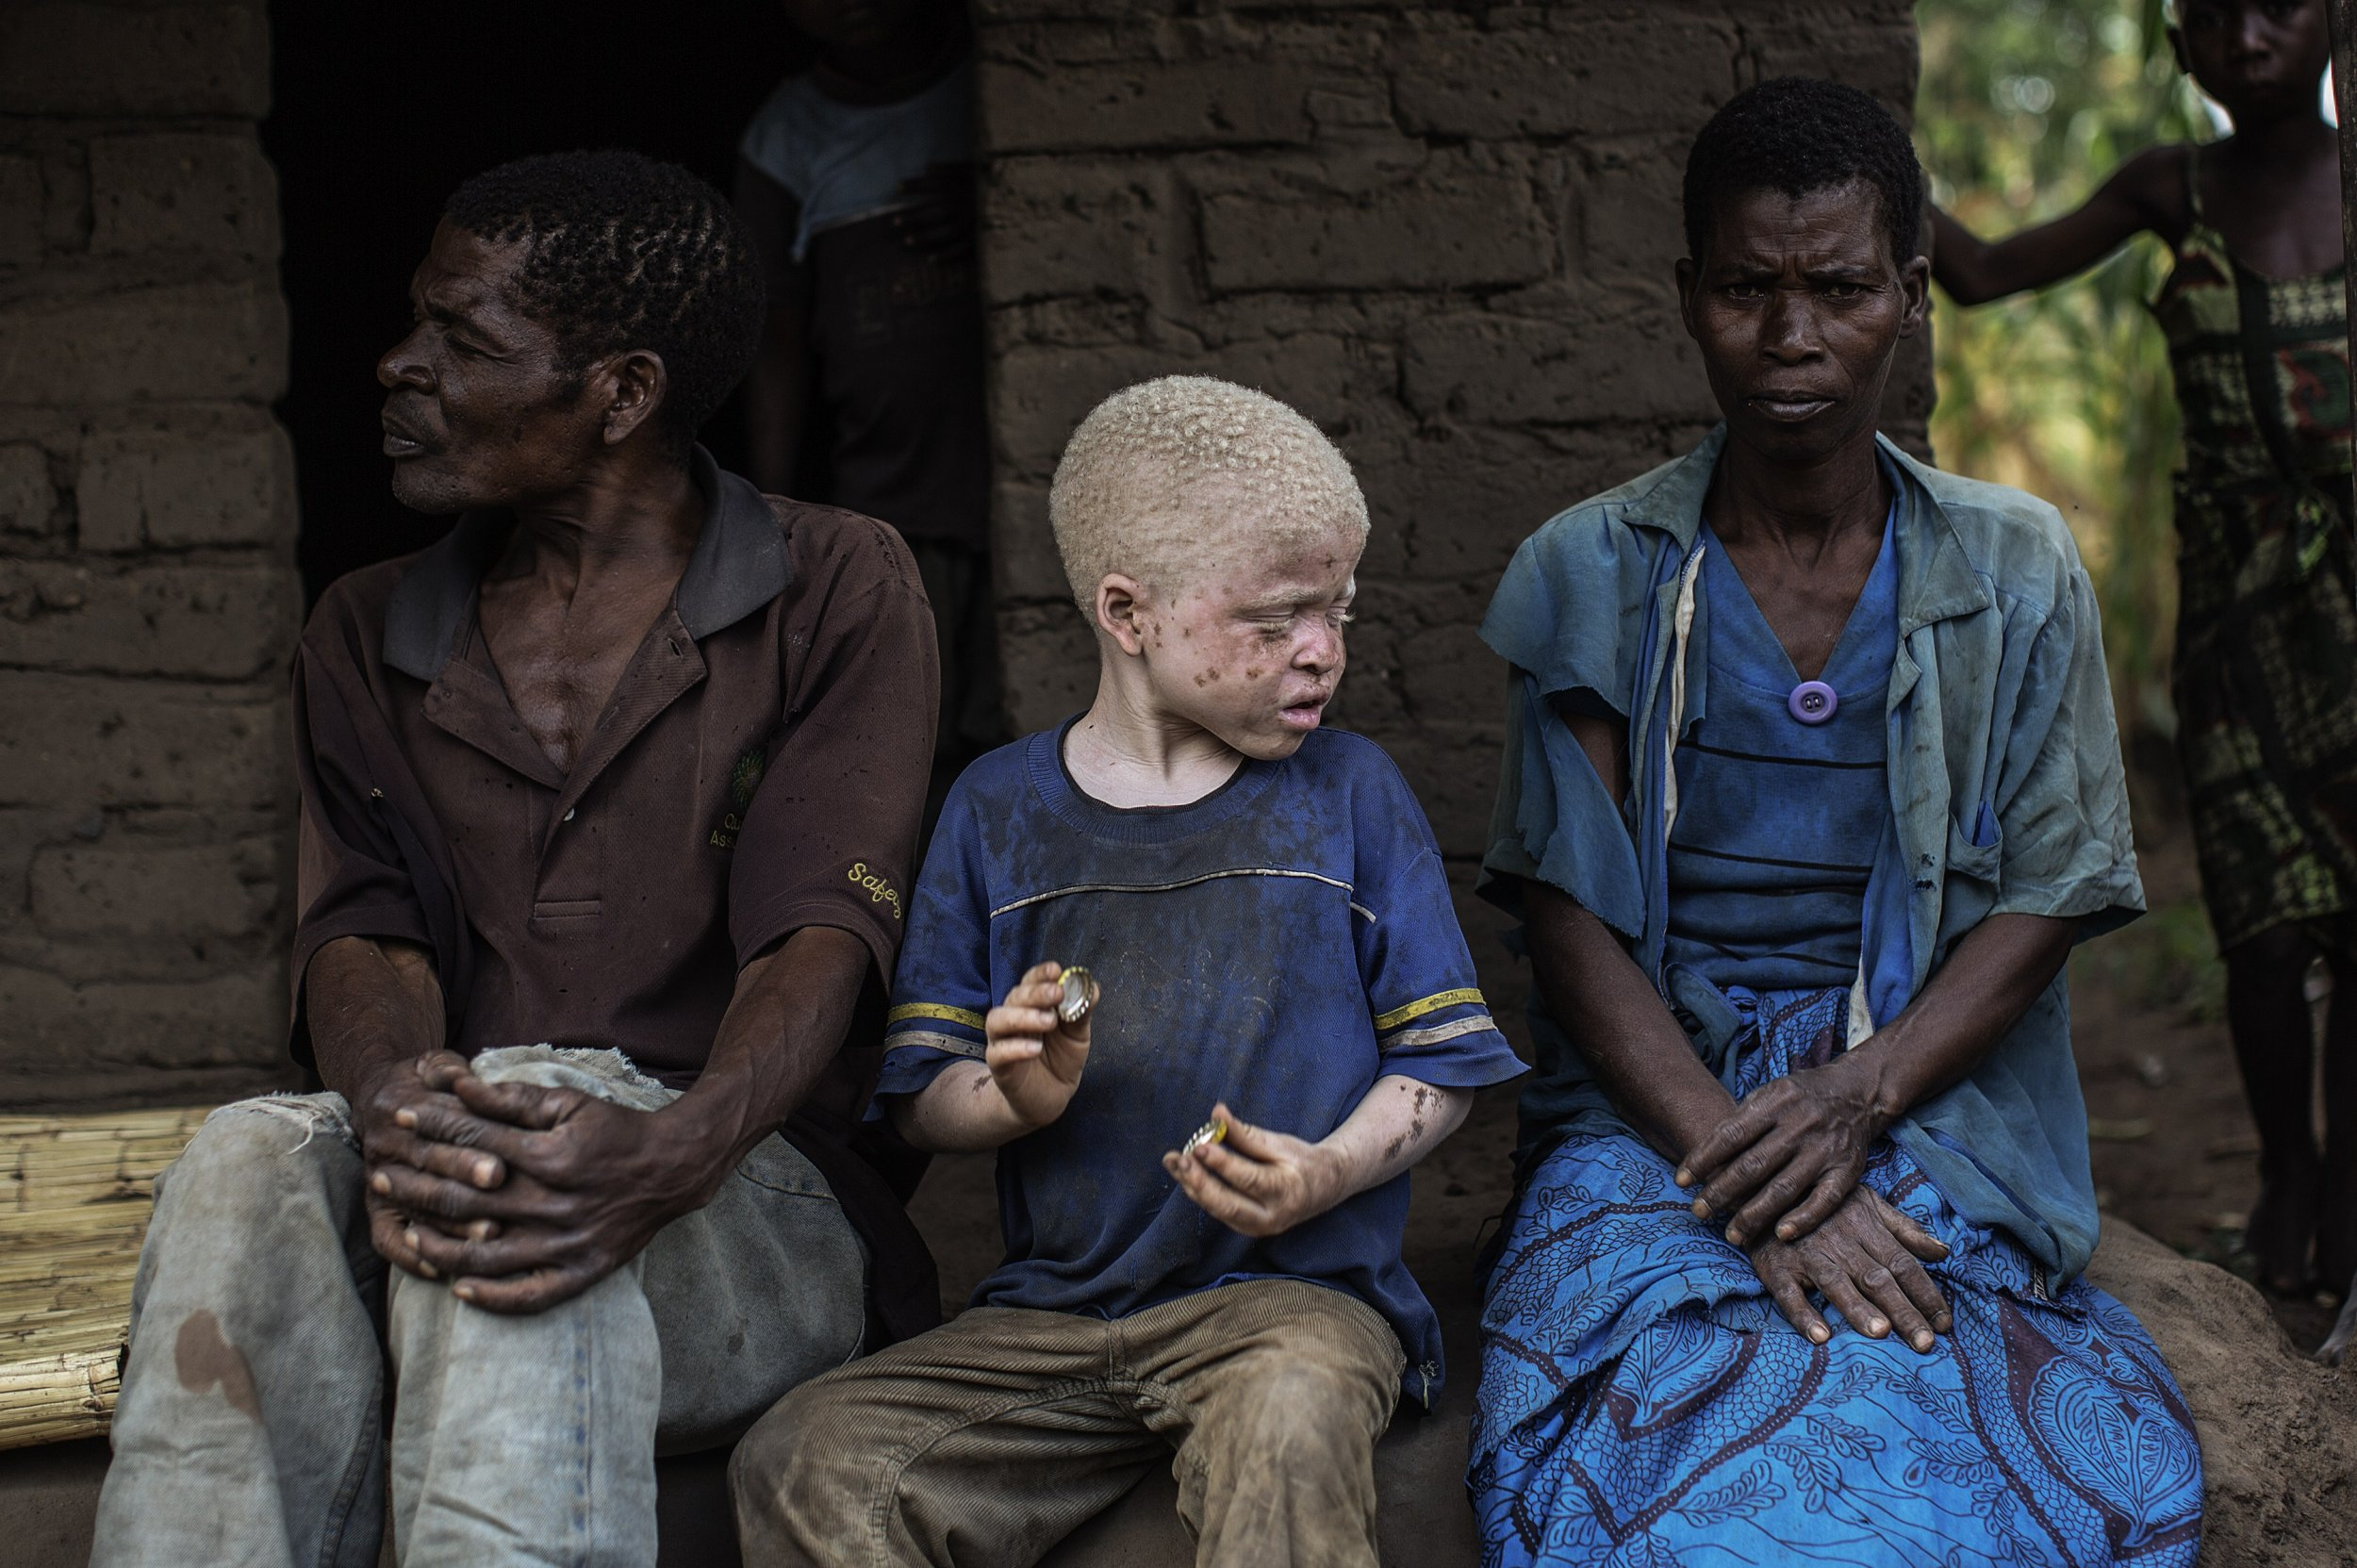 Albino people fear 'extinction' in Malawi after long string of murders